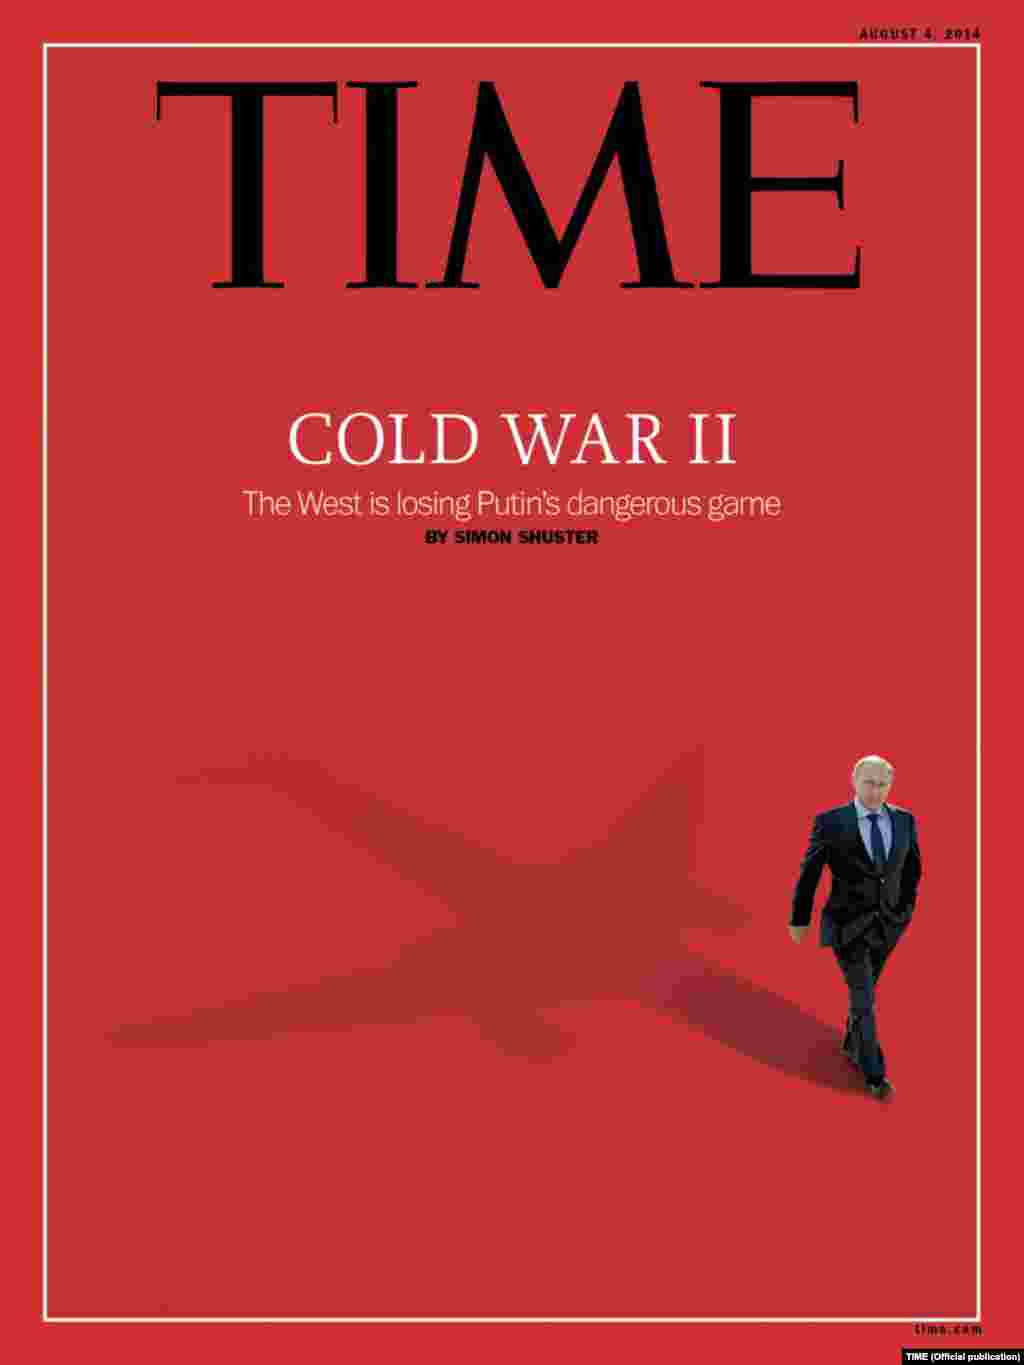 """The August 4 cover of""""Time"""" magazine says the West is losing """"Cold War II"""" against """"Putin's dangerous game."""""""